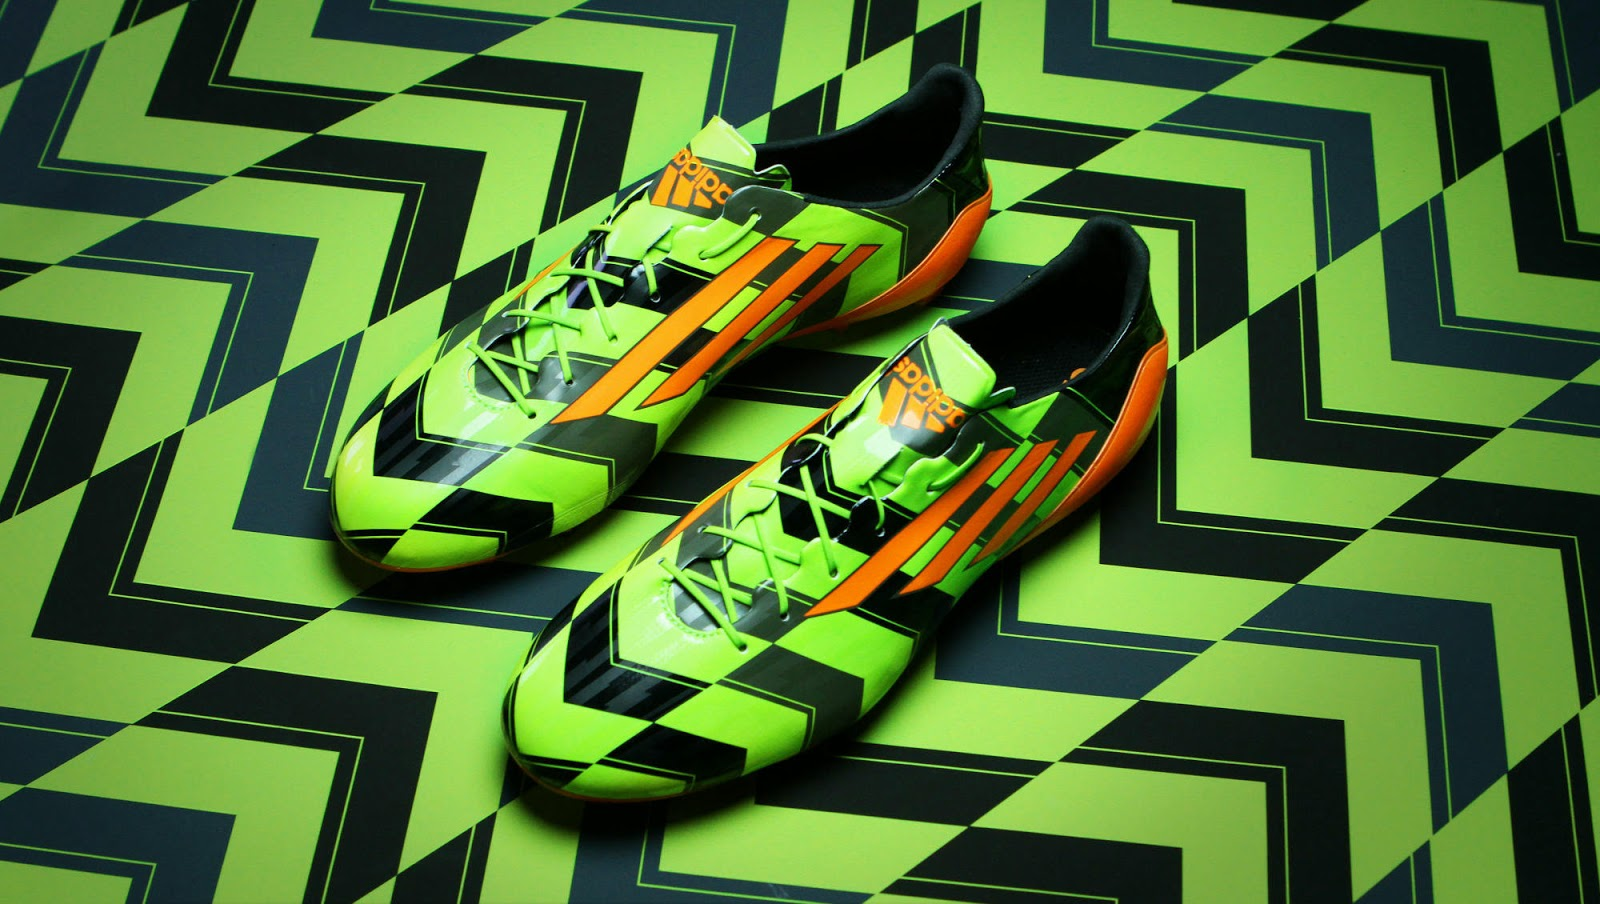 Adidas Adizero F50 Crazylight Boot Released In The End